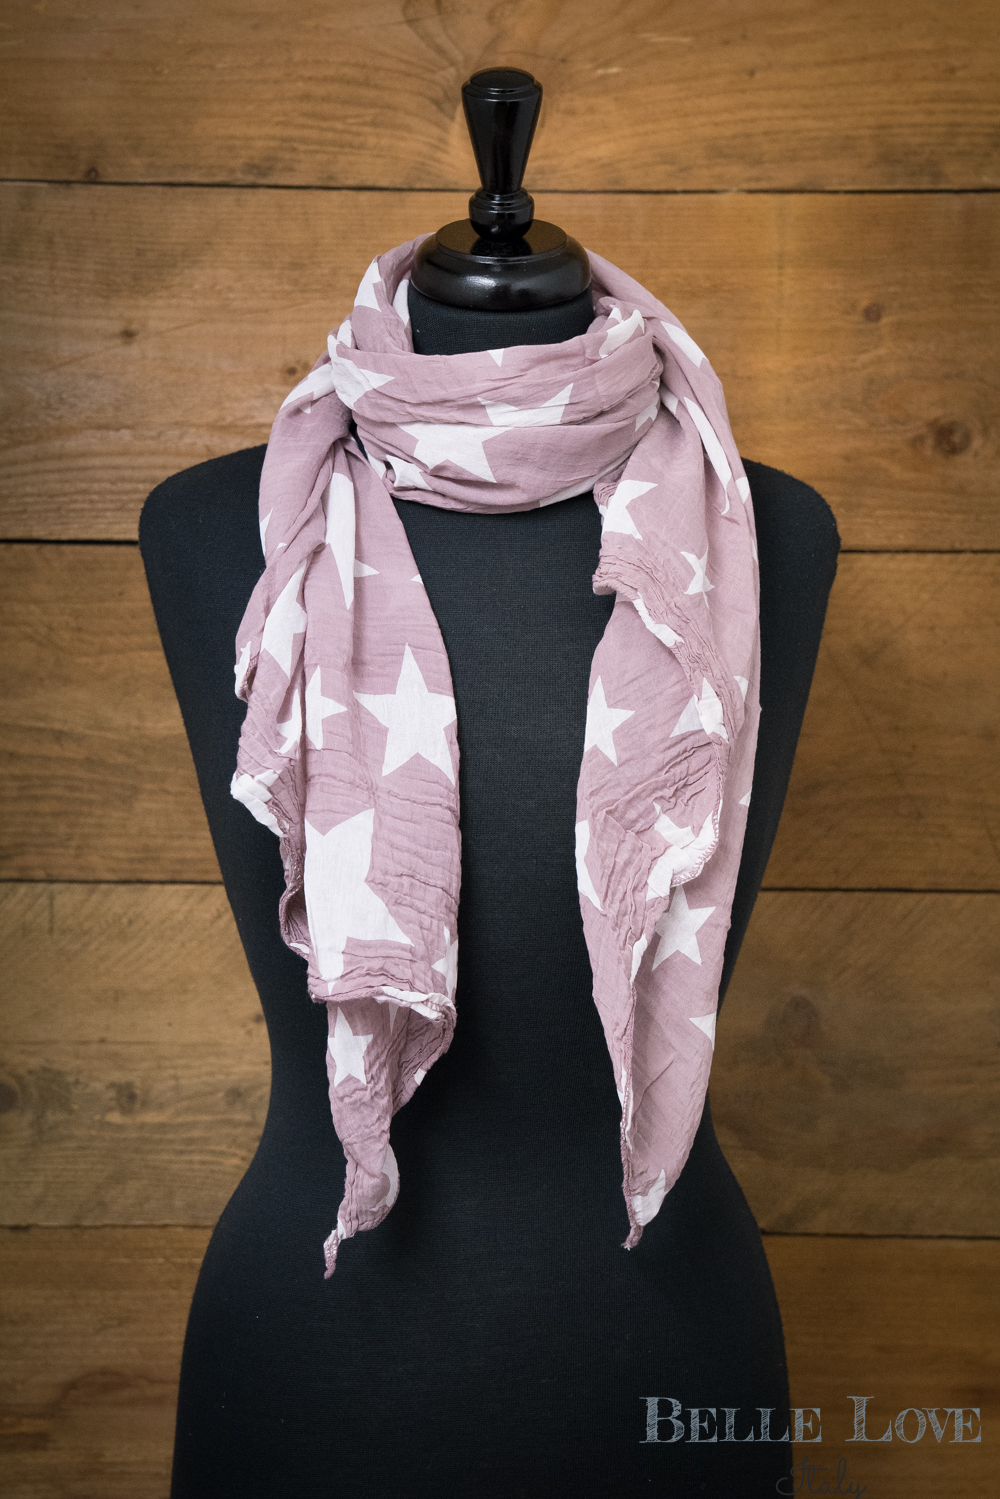 Belle Love Italy Big Star Silk Mix Scarf